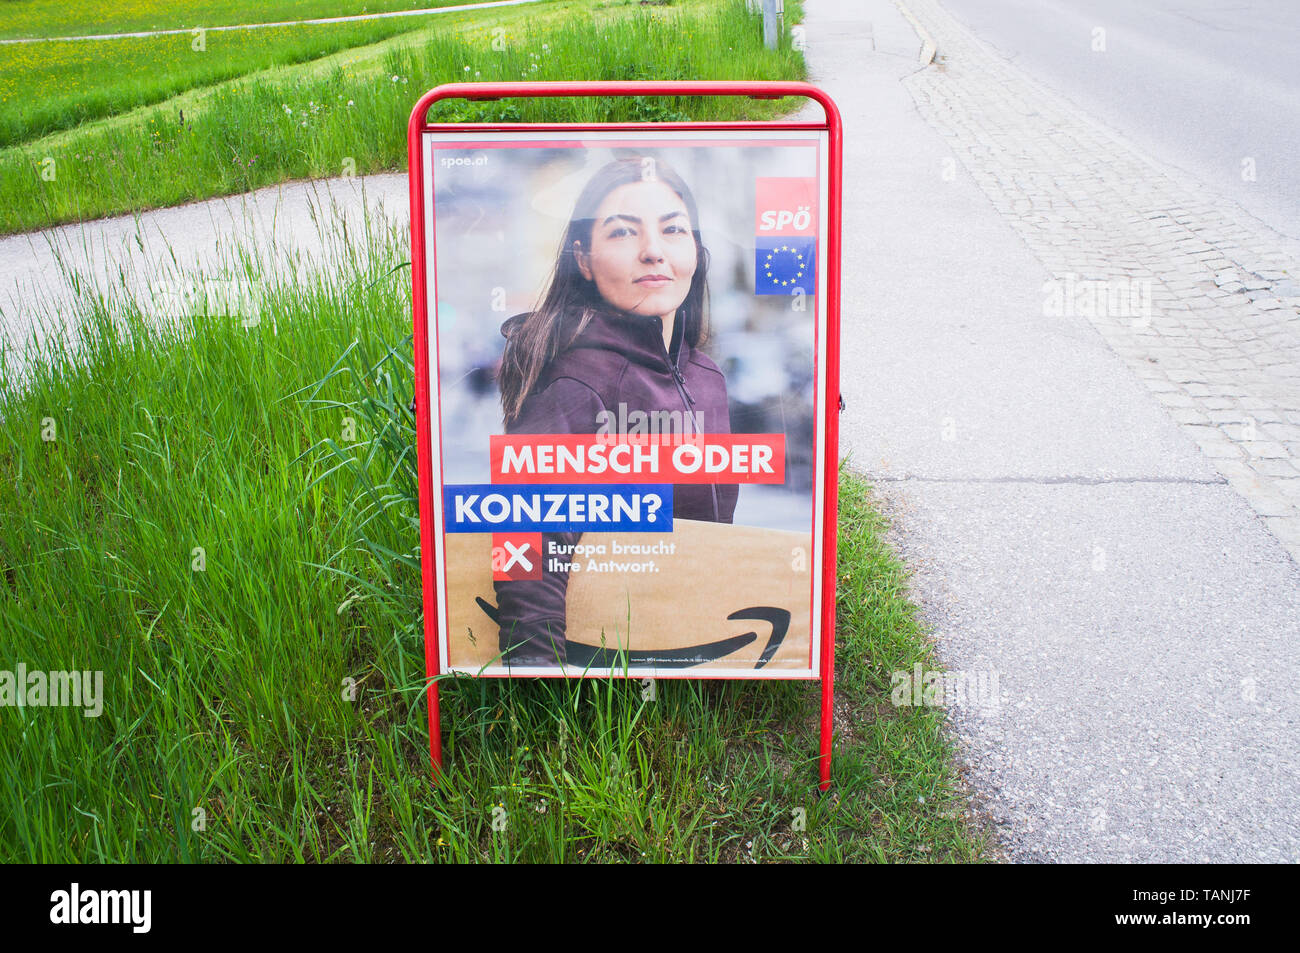 Poster of SPO, MENSCH ODER KONZERN, pre-election campaign for 2019 European Parliament election in Altaussee, Austria, May 25, 2019.  (CTK Photo/Libor - Stock Image